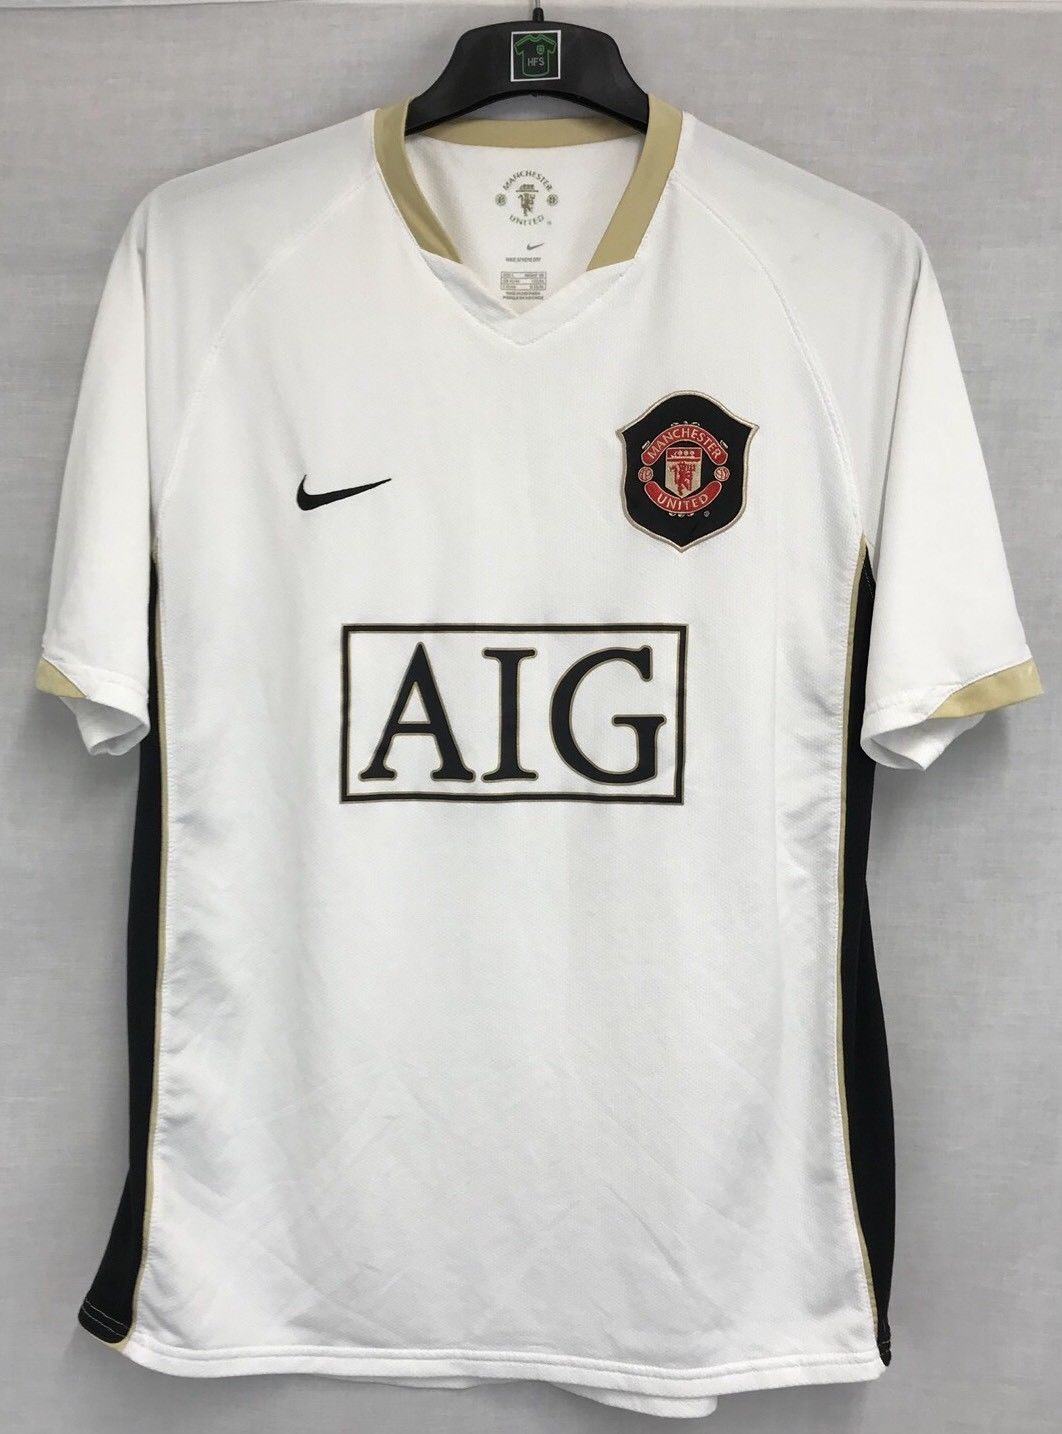 Manchester United Wayne Rooney 8 Football Shirt 2006 07 Adults Large Nike.  🔍. instock 9d146a536